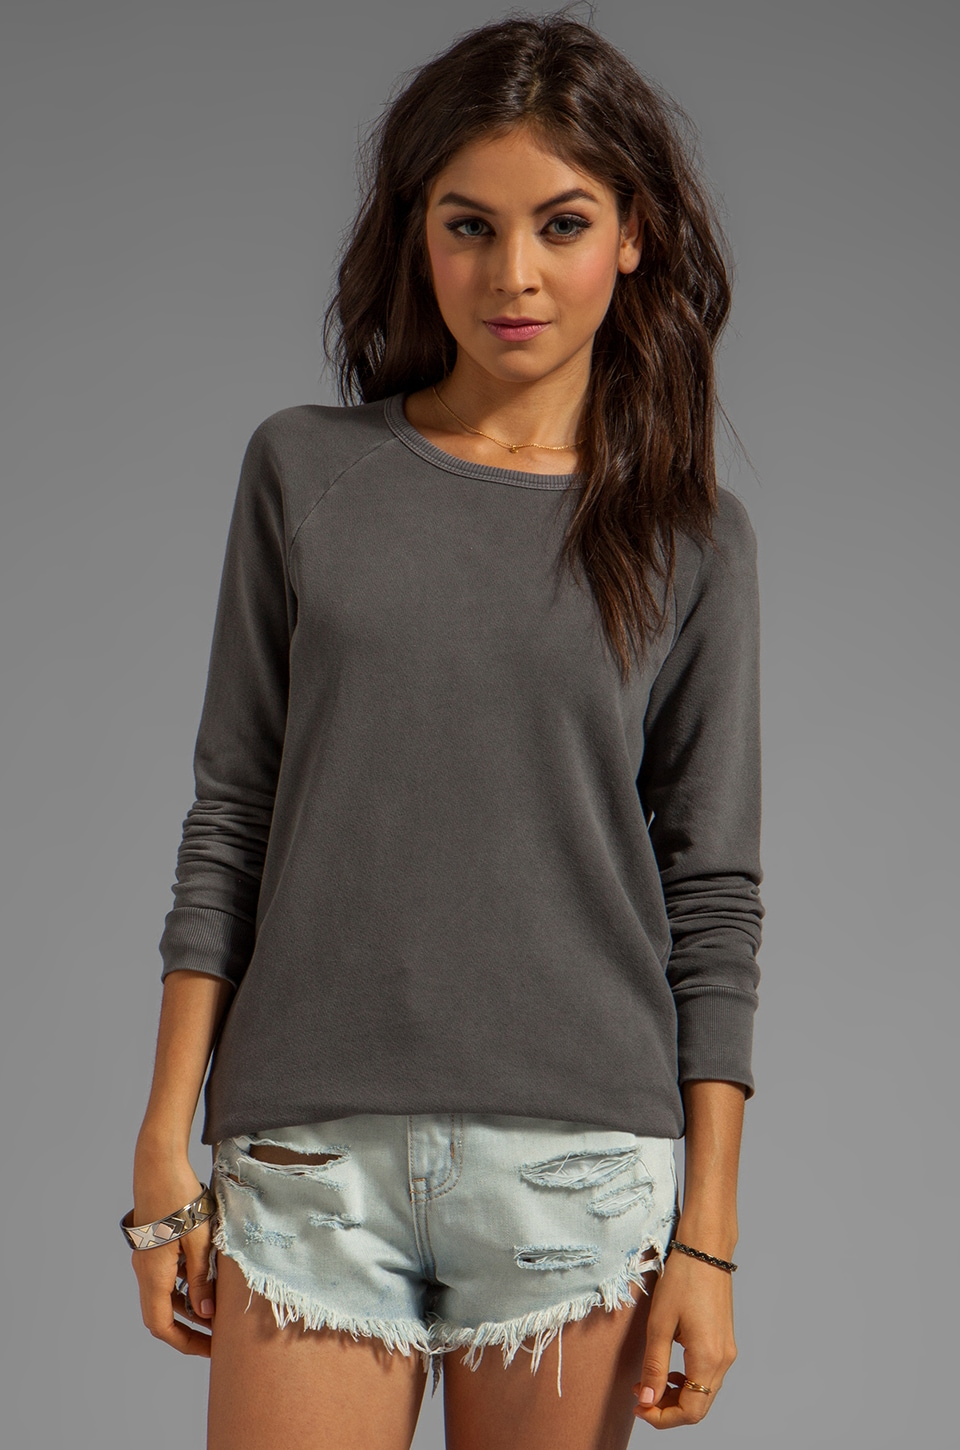 Soft Joie Annora Sweatshirt in Capers